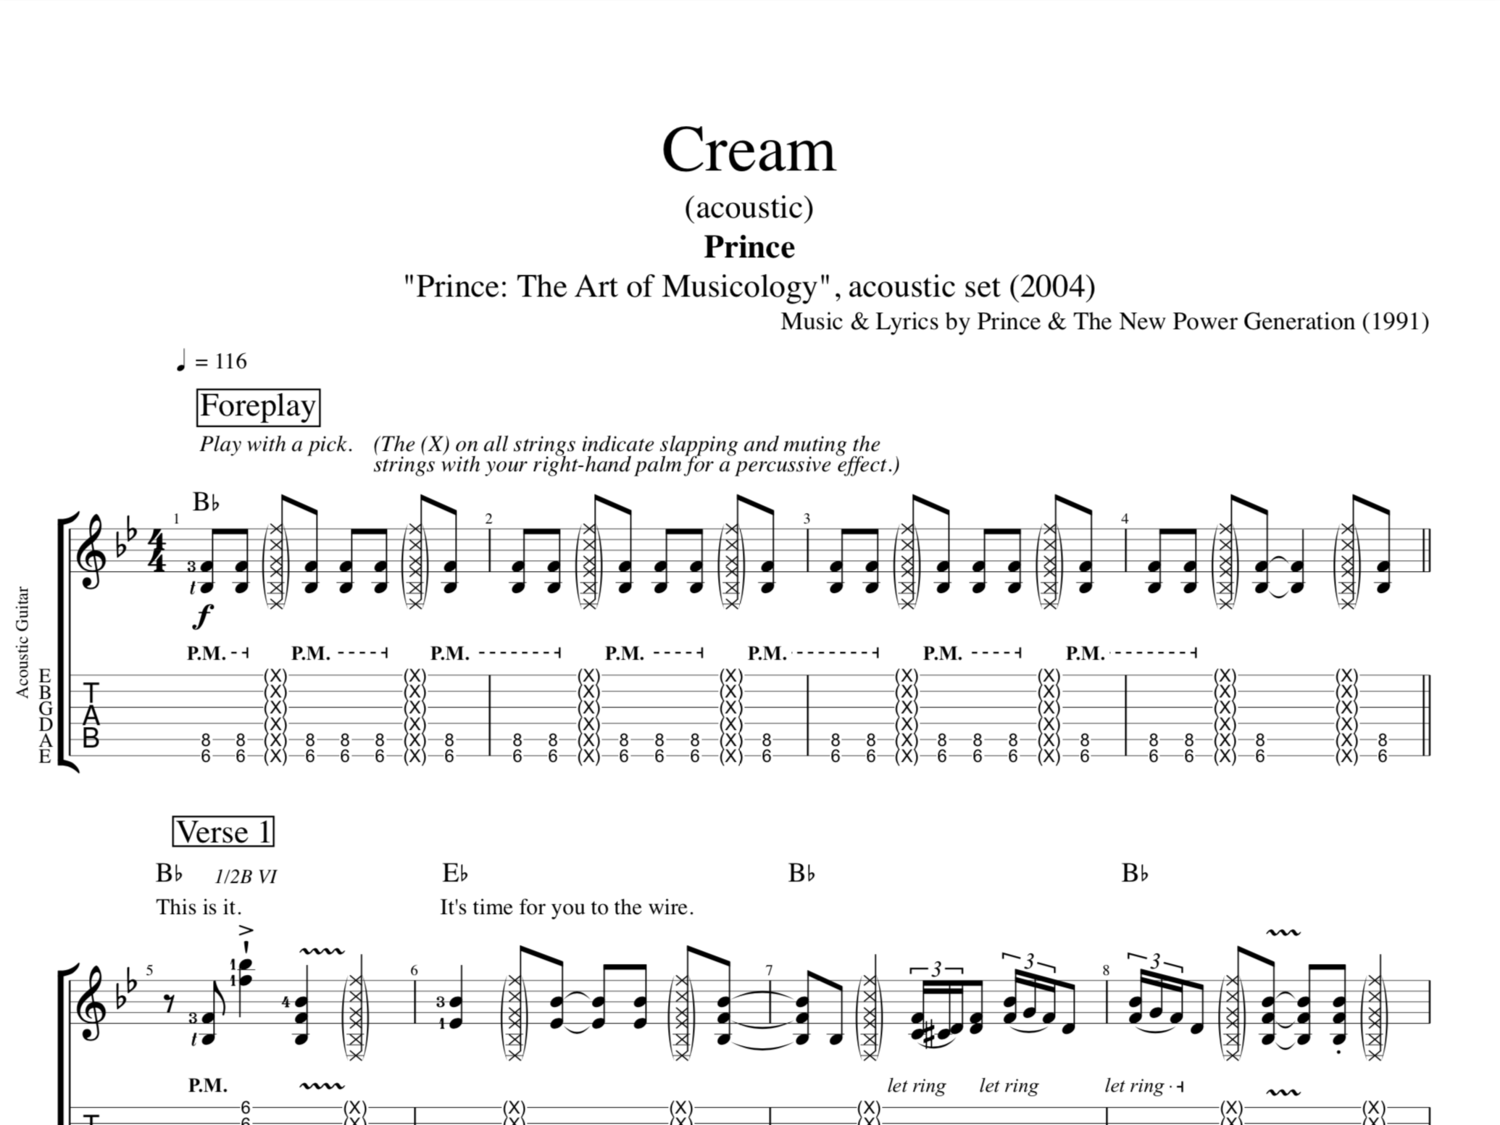 Guitar chord tabs images guitar chords examples cream acoustic by prince guitar tab chords sheet music cream acoustic by prince guitar tab chords hexwebz Image collections